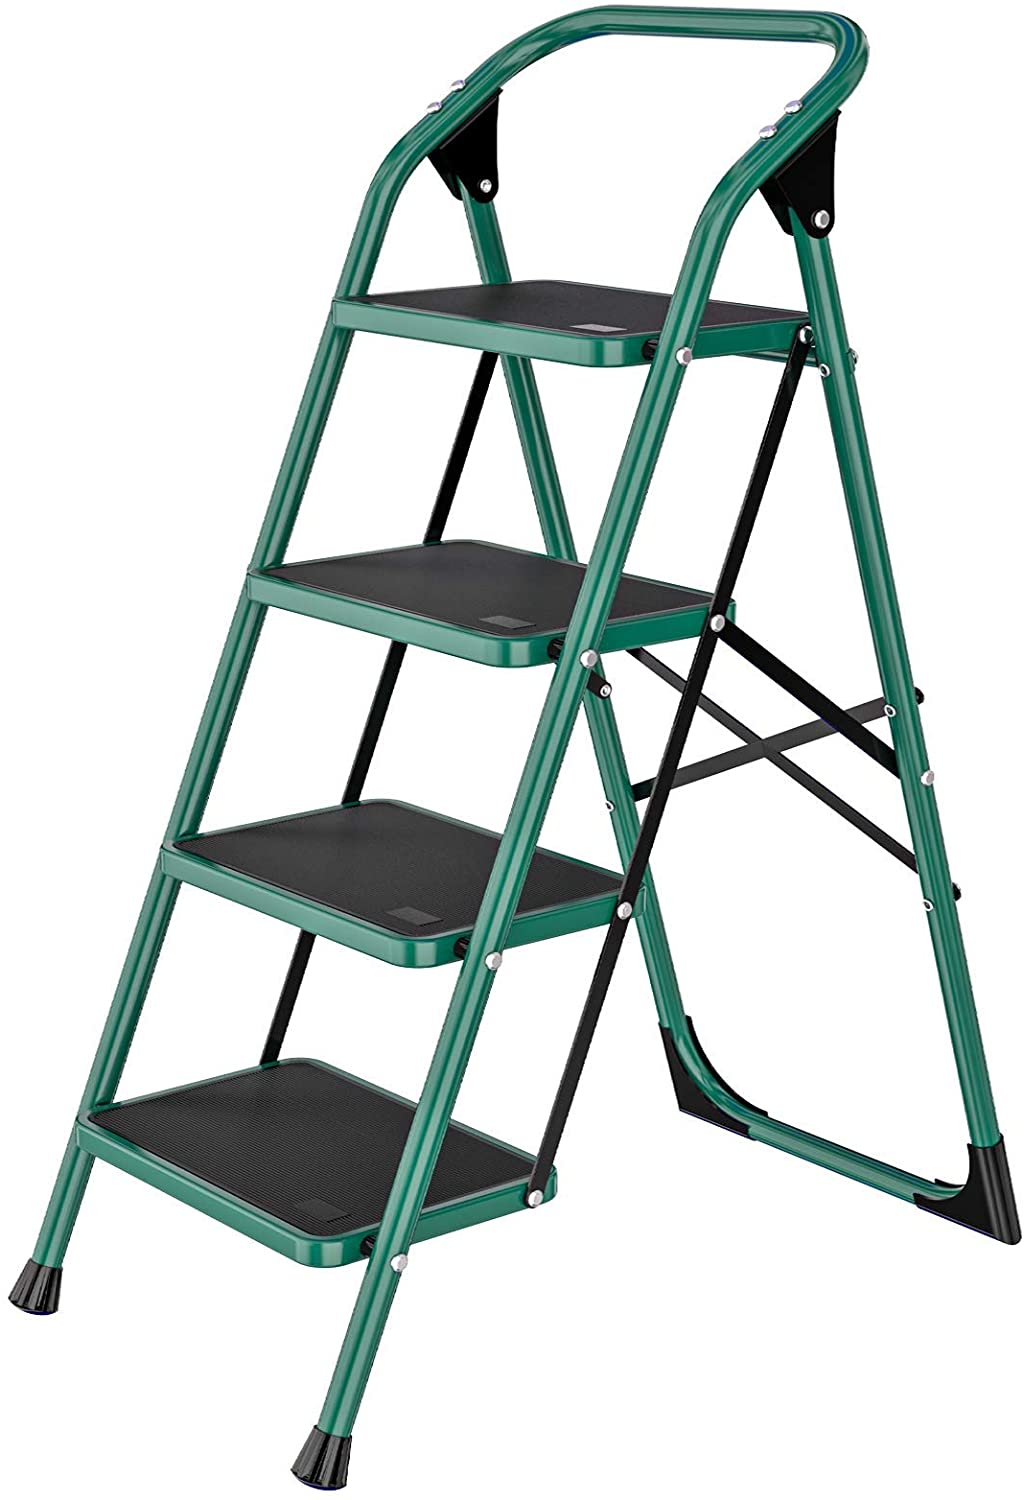 SUNCOO 4 Step Ladder, Folding Step Stool w/Non-Slip Rubber Feet, 330lbs Load Sturdy Steel Foldable Ladders, Lightweight Portable Stairs, Multi-use Ladder Stand for Household and Office